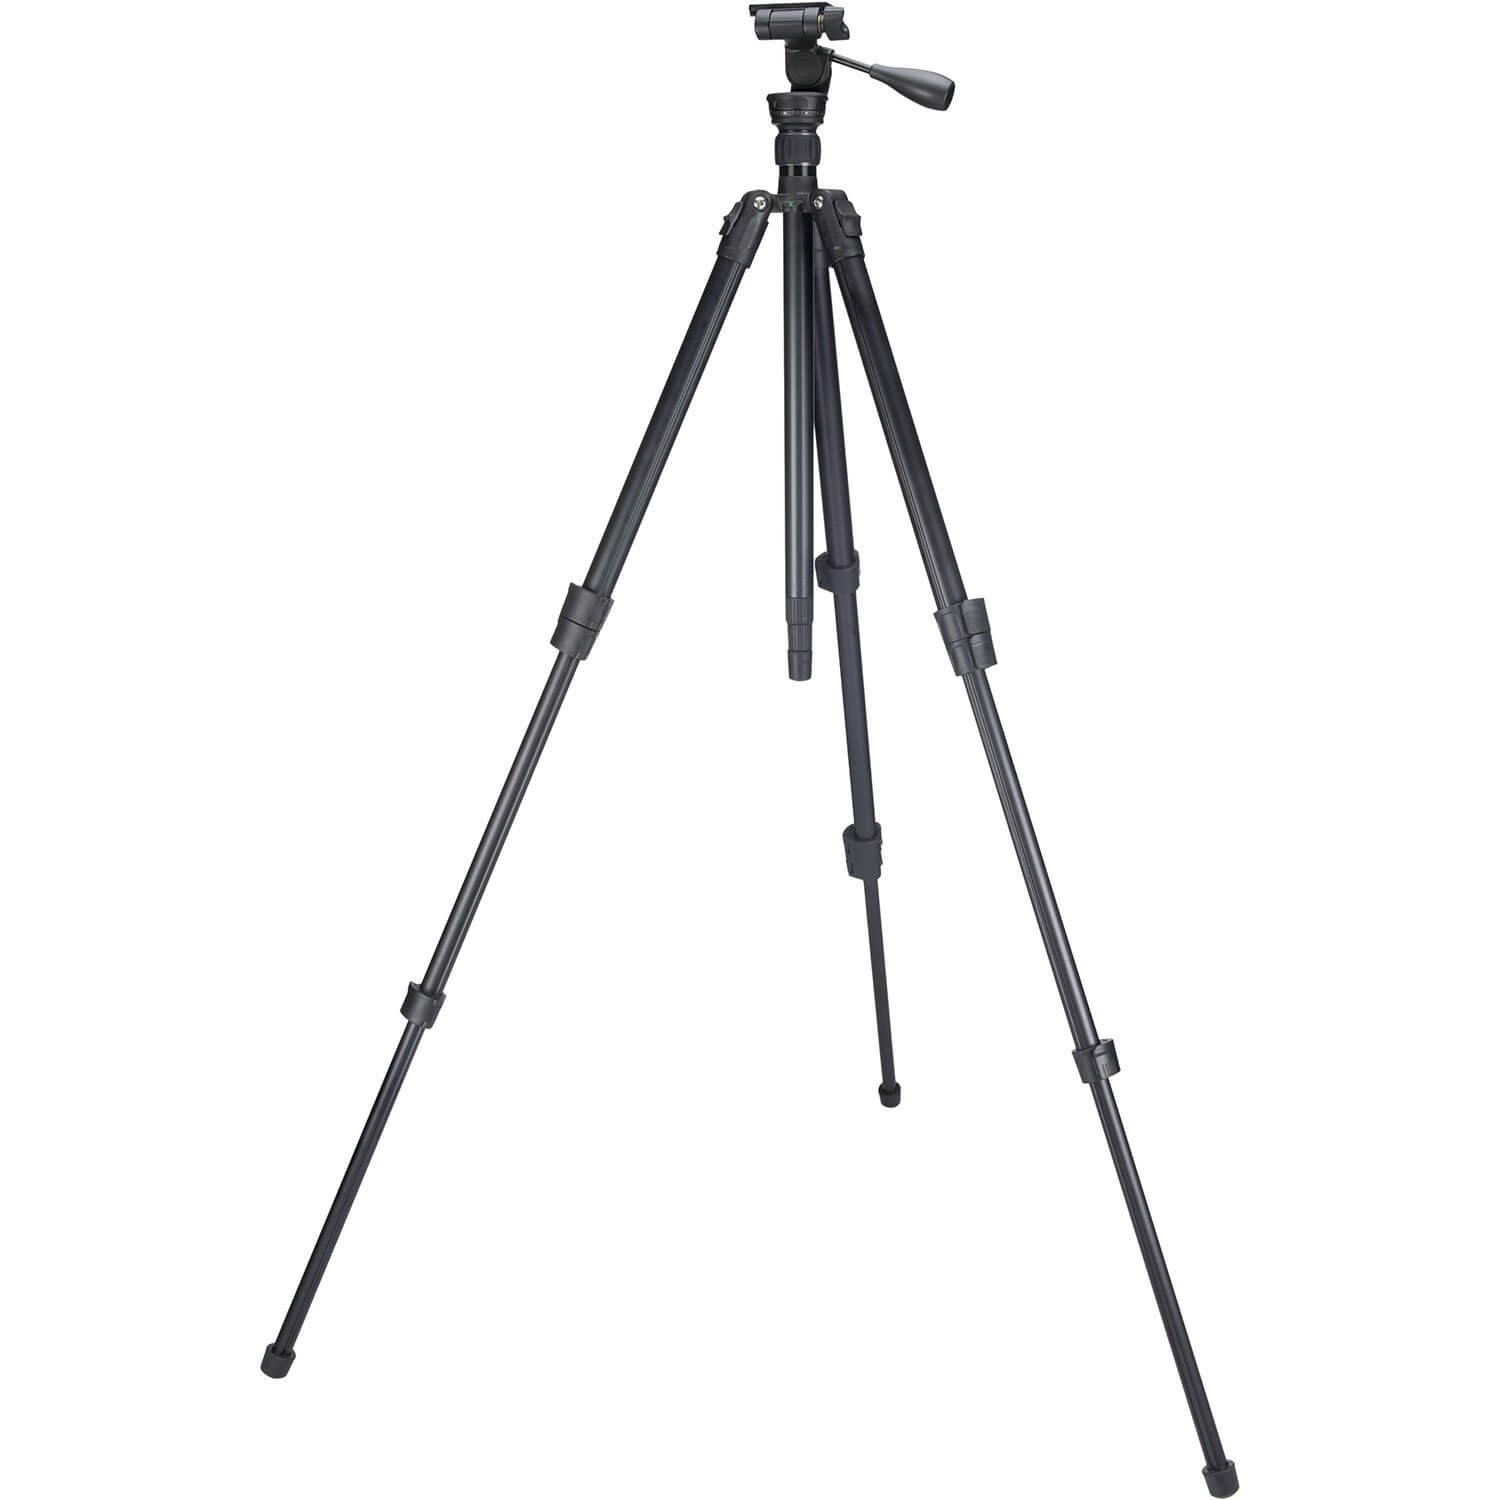 Platinum Series Tripod/Monopod Kit - Model #: PT-TPM665-C